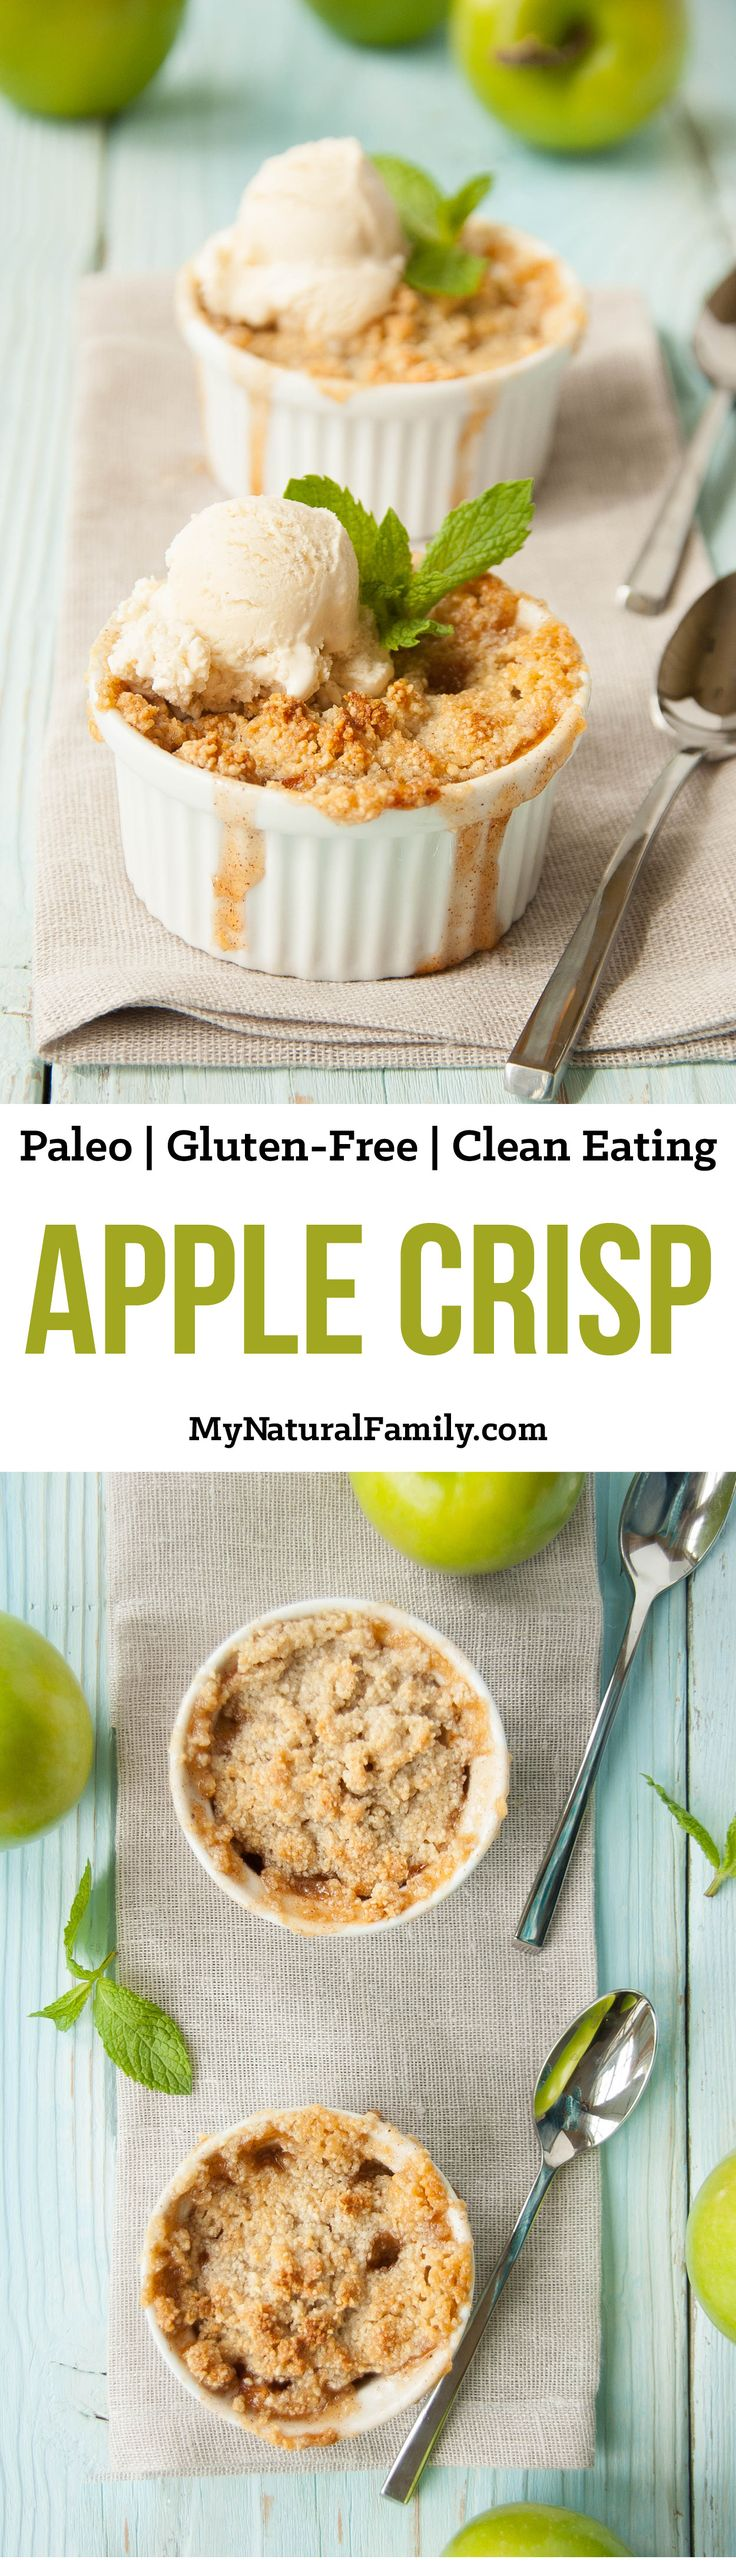 This Paleo apple crisp recipe is buttery, sweet, and crunchy. The arrowroot starch helps the cooked apples achieve a glossy, thick sauce while the honey sweetens it just enough. {Paleo, Gluten-Free, Clean Eating}